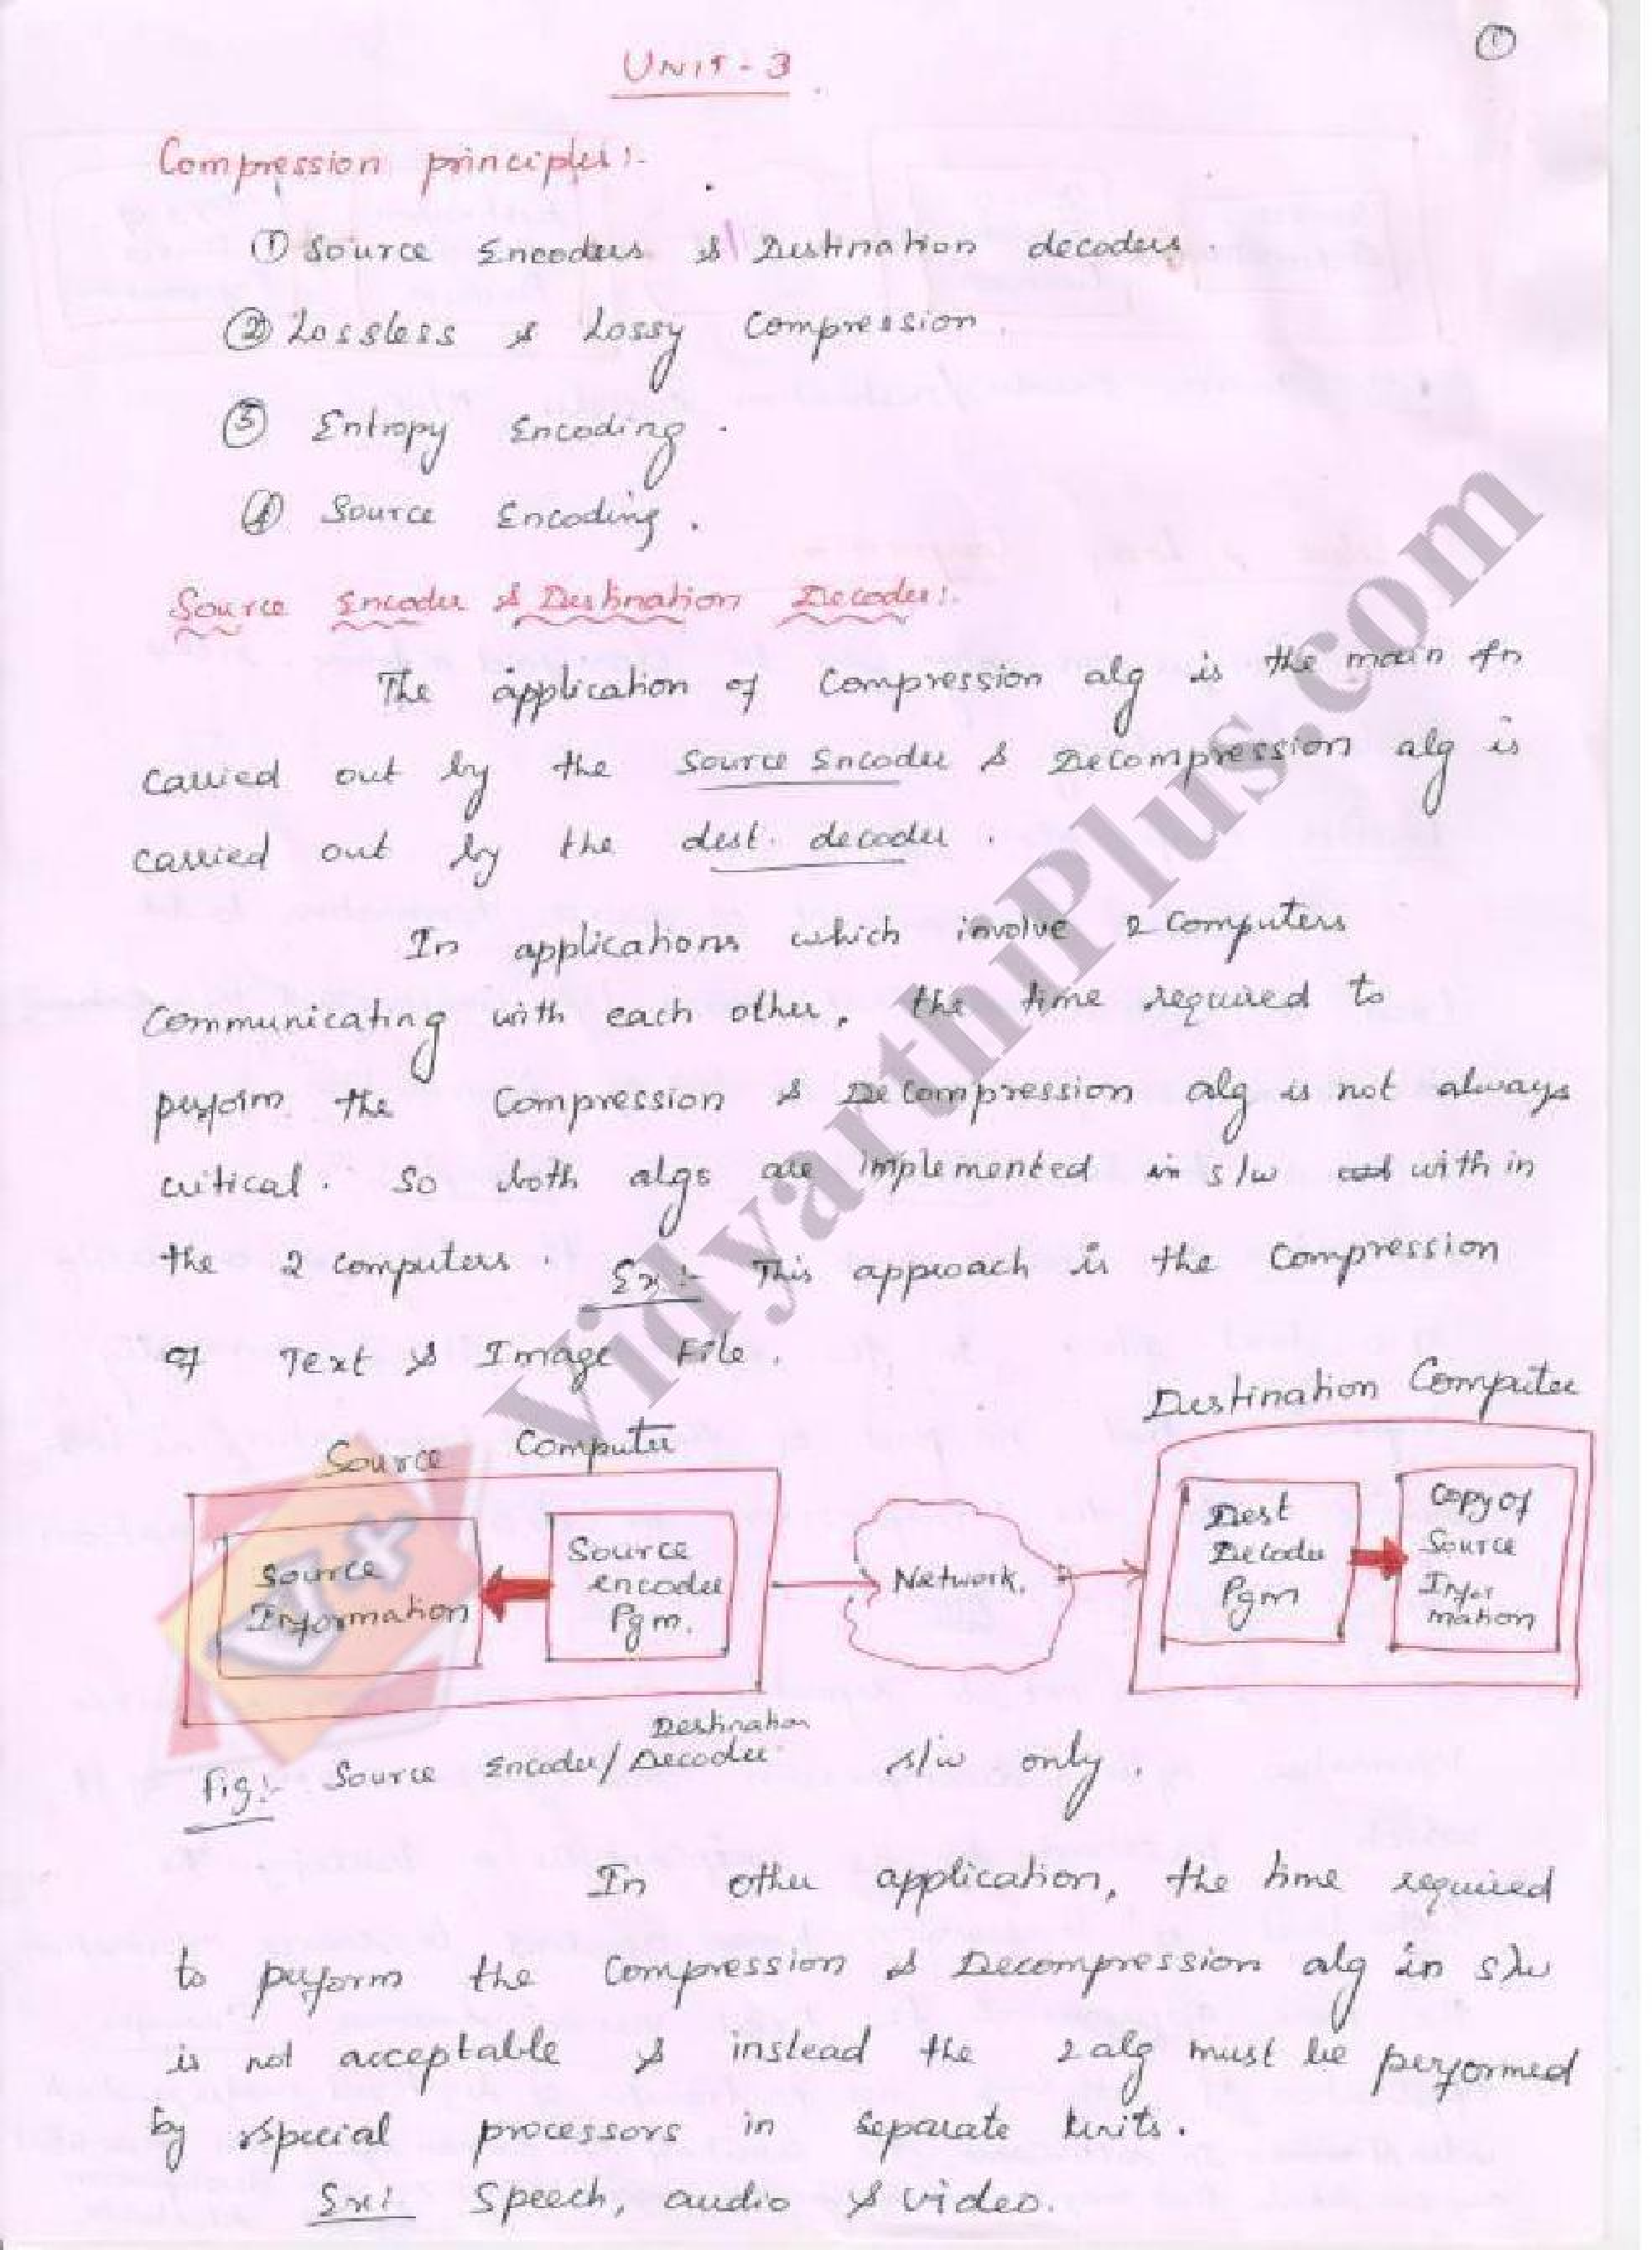 Multimedia compression & communication Premium Lecture Notes - Ashok Edition